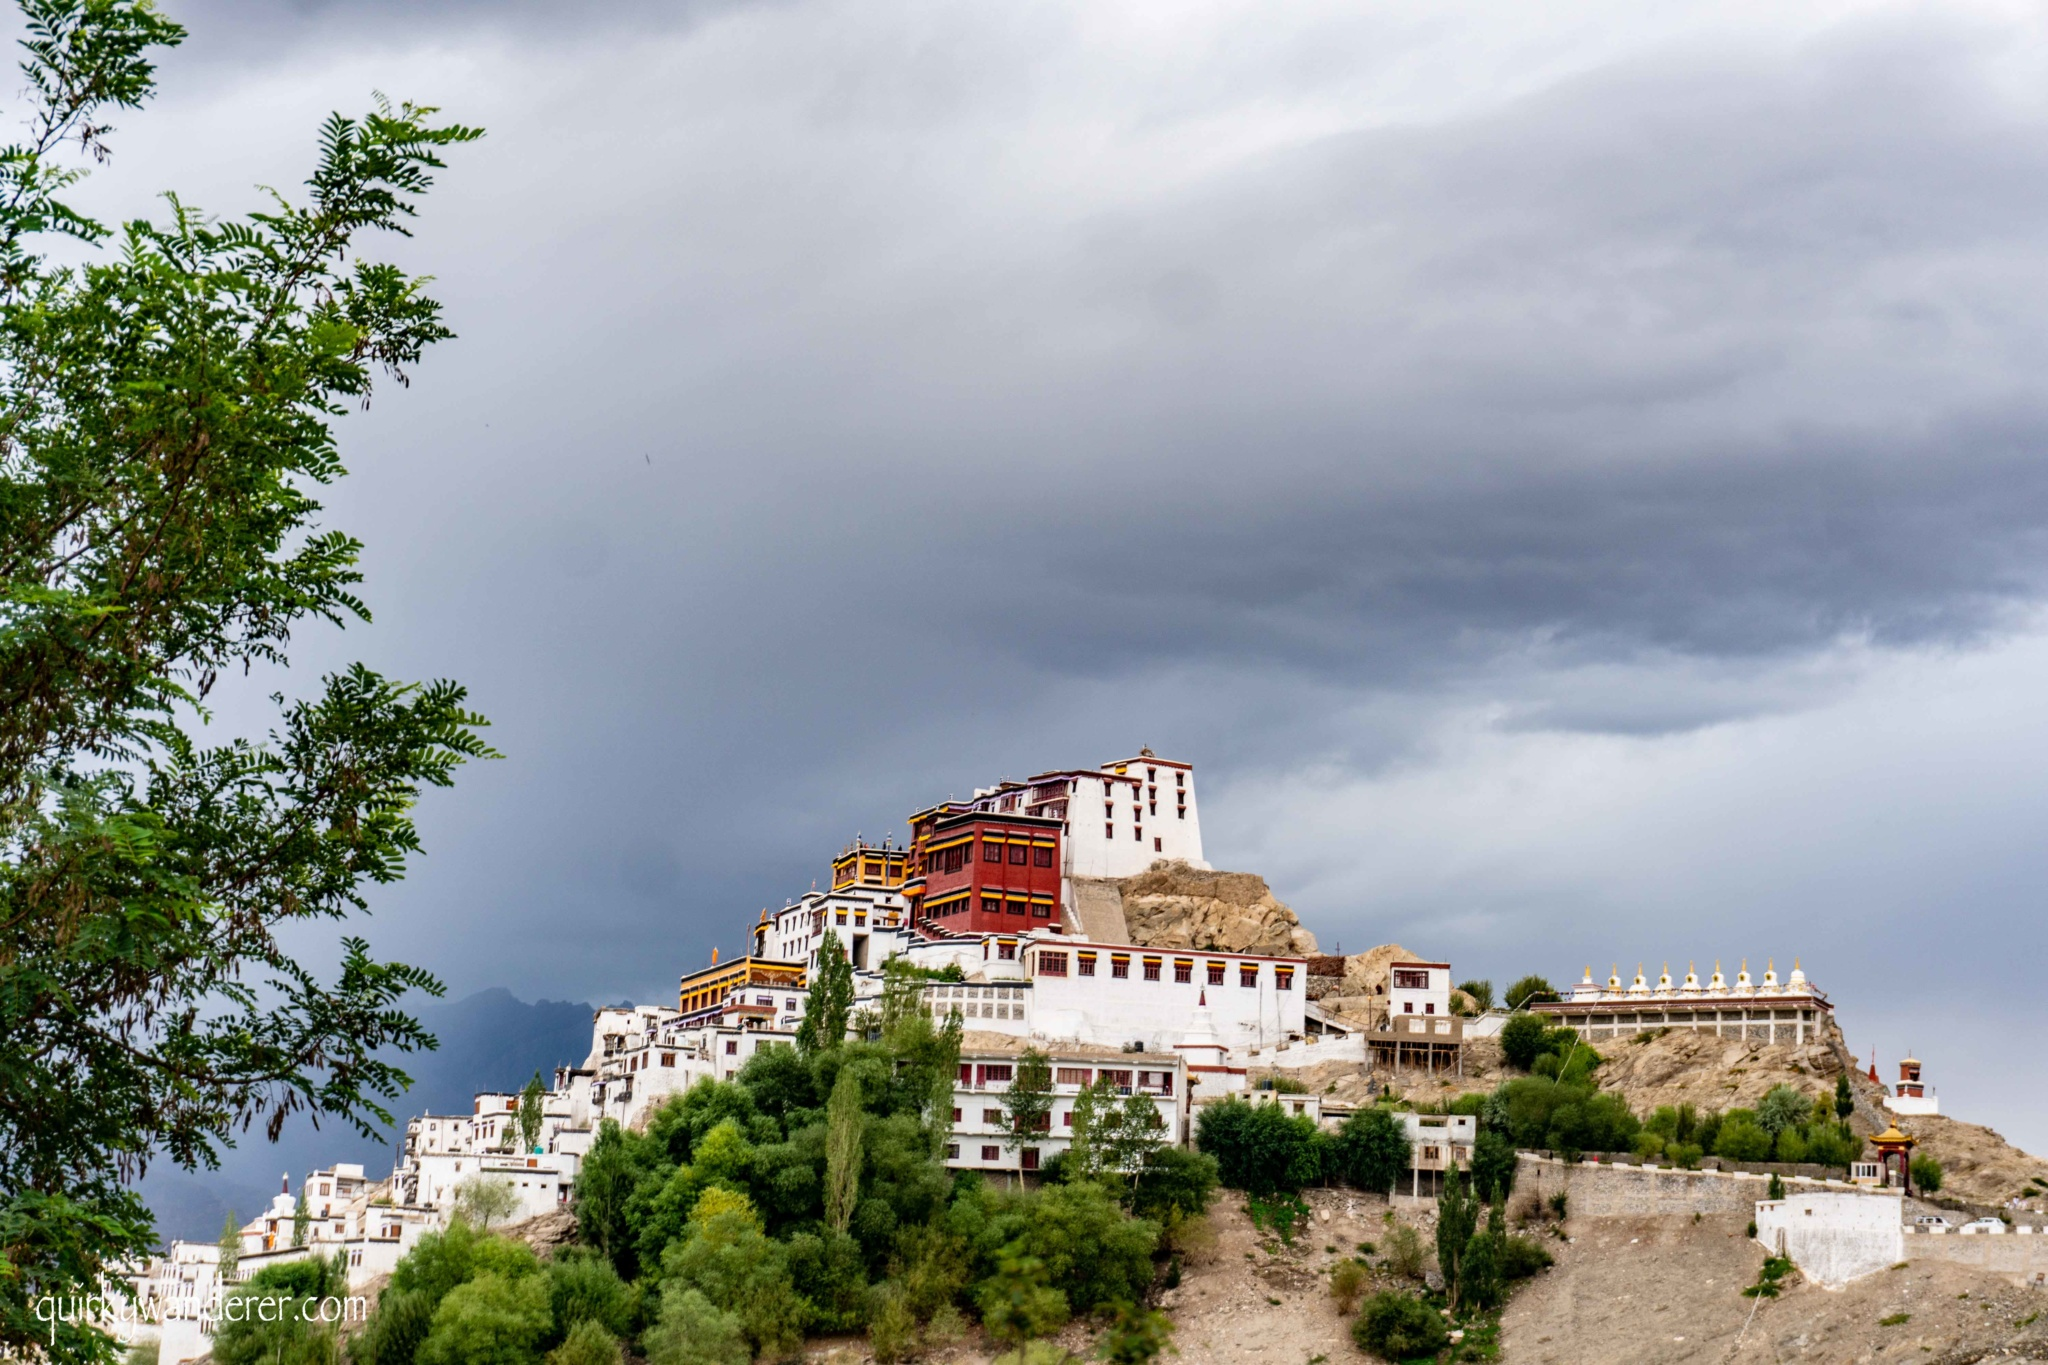 Monasteries of Leh